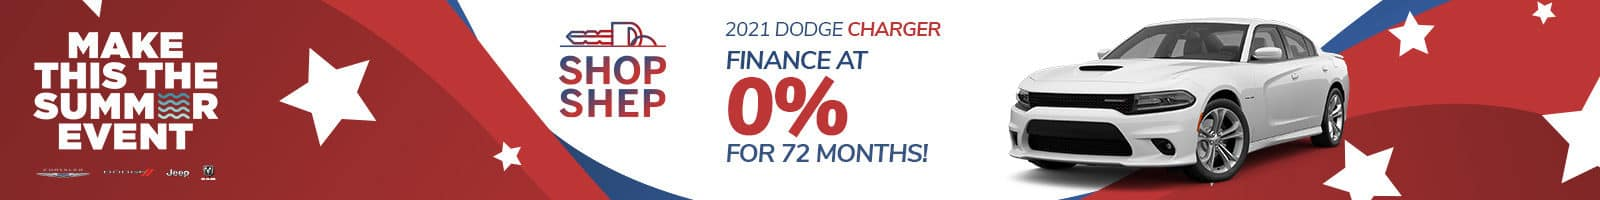 Special Financing on a New Dodge Charger near Auburn, Indiana